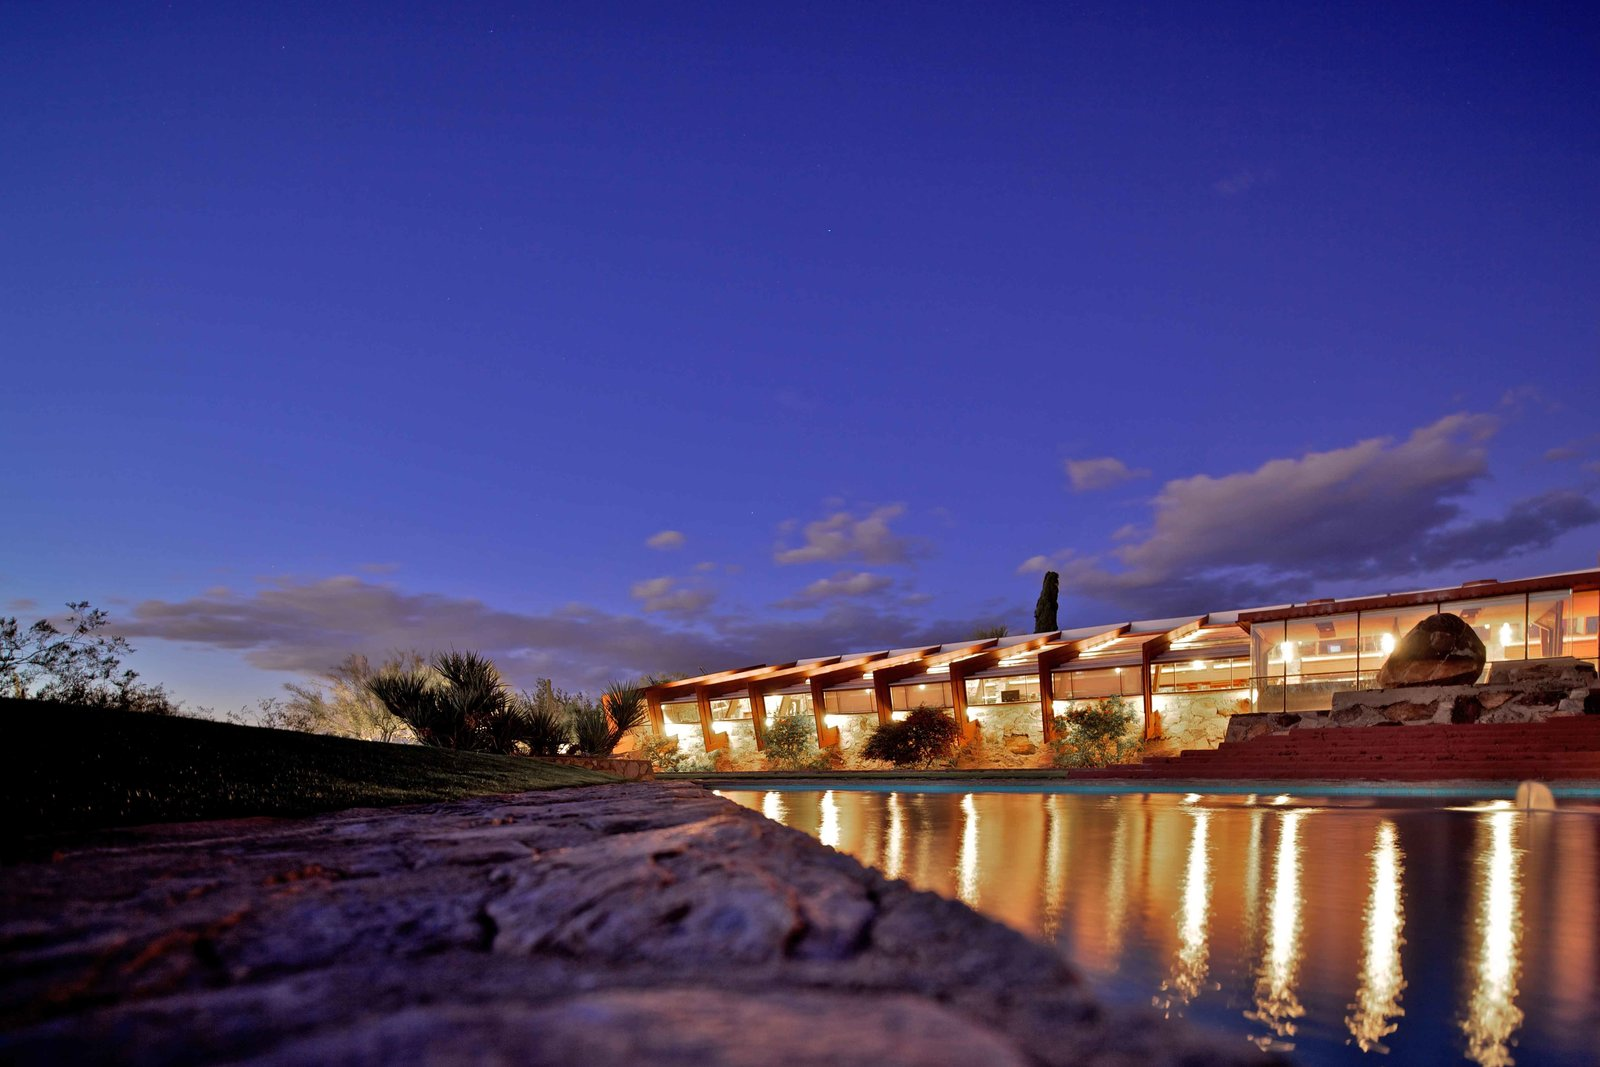 Taliesin West (1938, Scottsdale, Arizona). Wright experimented with architectural techniques on his winter home and studio over the course of two decades. He developed a stone masonry out of boulders and rocks found around the site. The property houses the offices of the Frank Lloyd Wright Foundation; the resident staff and students who live and work at Taliesin and Taliesin West; and the Frank Lloyd Wright School of Architecture.  Iconic Frank Lloyd Wright Buildings by Allie Weiss